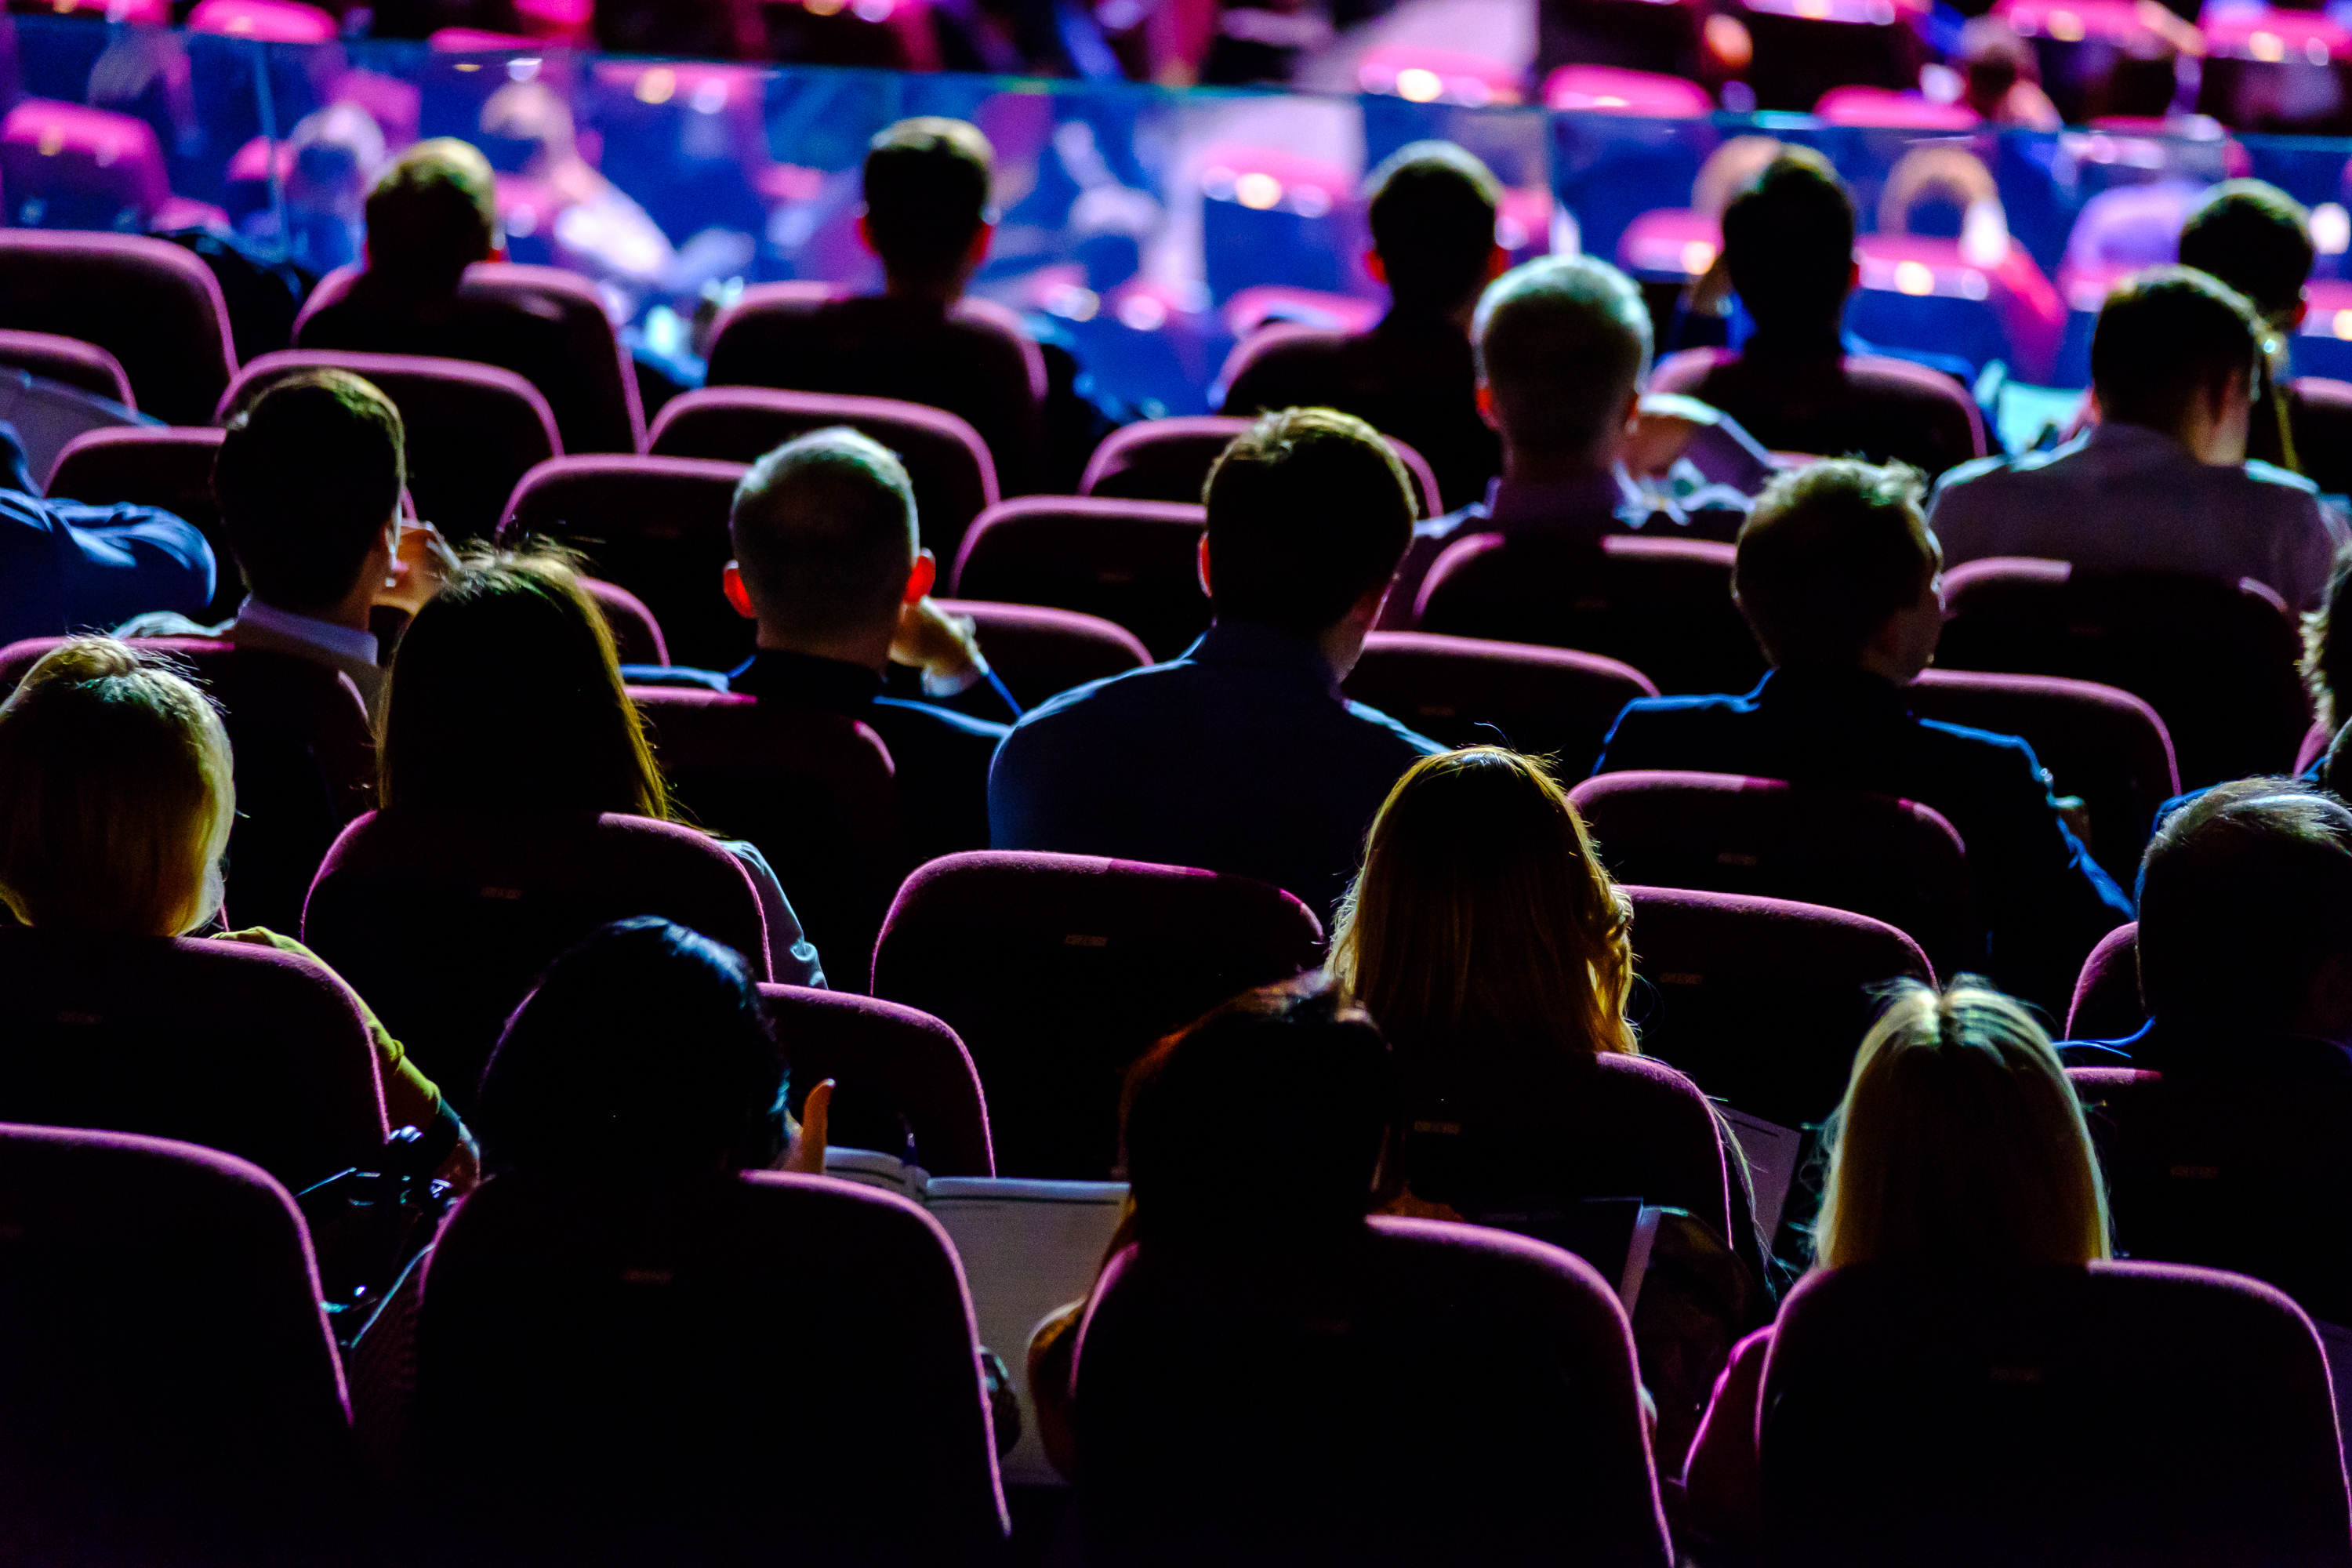 a_crowd_looking_at_a_stage